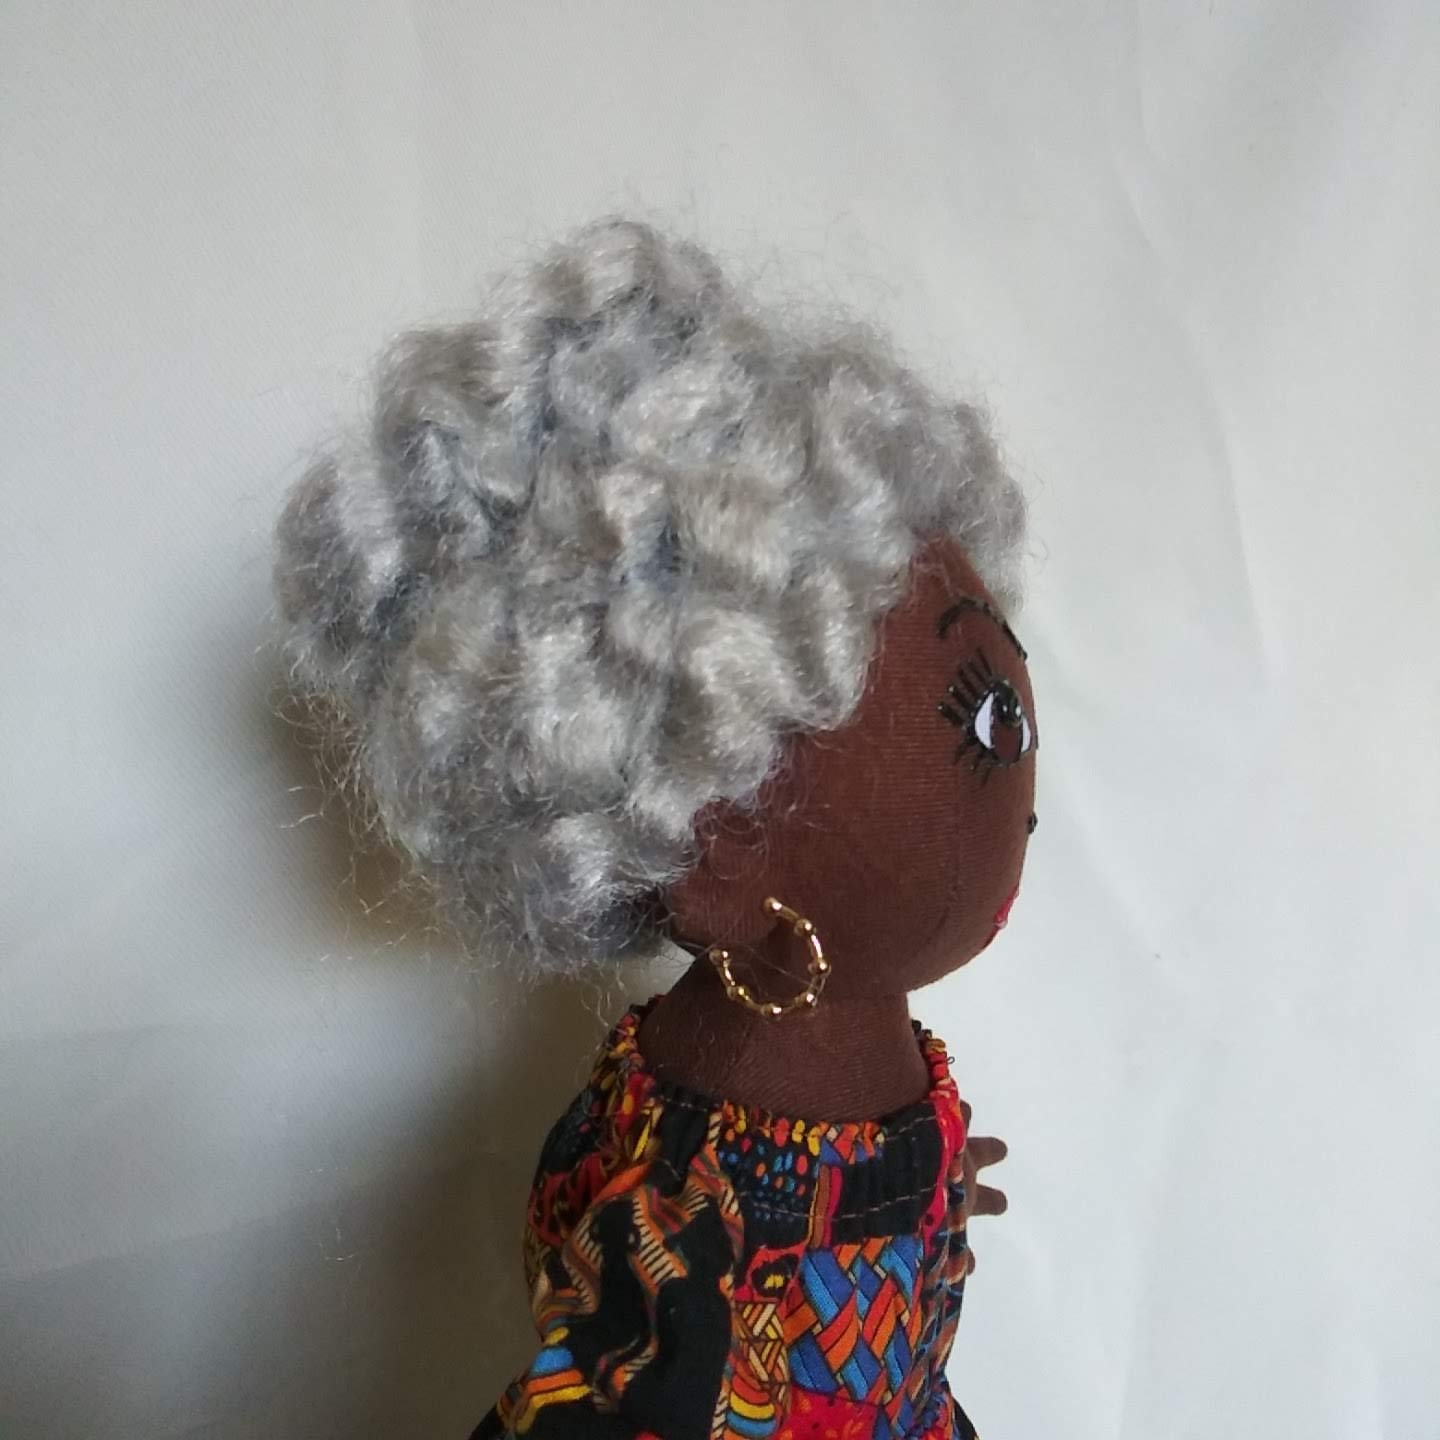 African Inspired Handcrafted Multicultural Doll Hand Painted African American Doll 14 inch Doll Black Doll Maker Natural Hair Styles Black Doll Collectible Doll Ethnic Doll